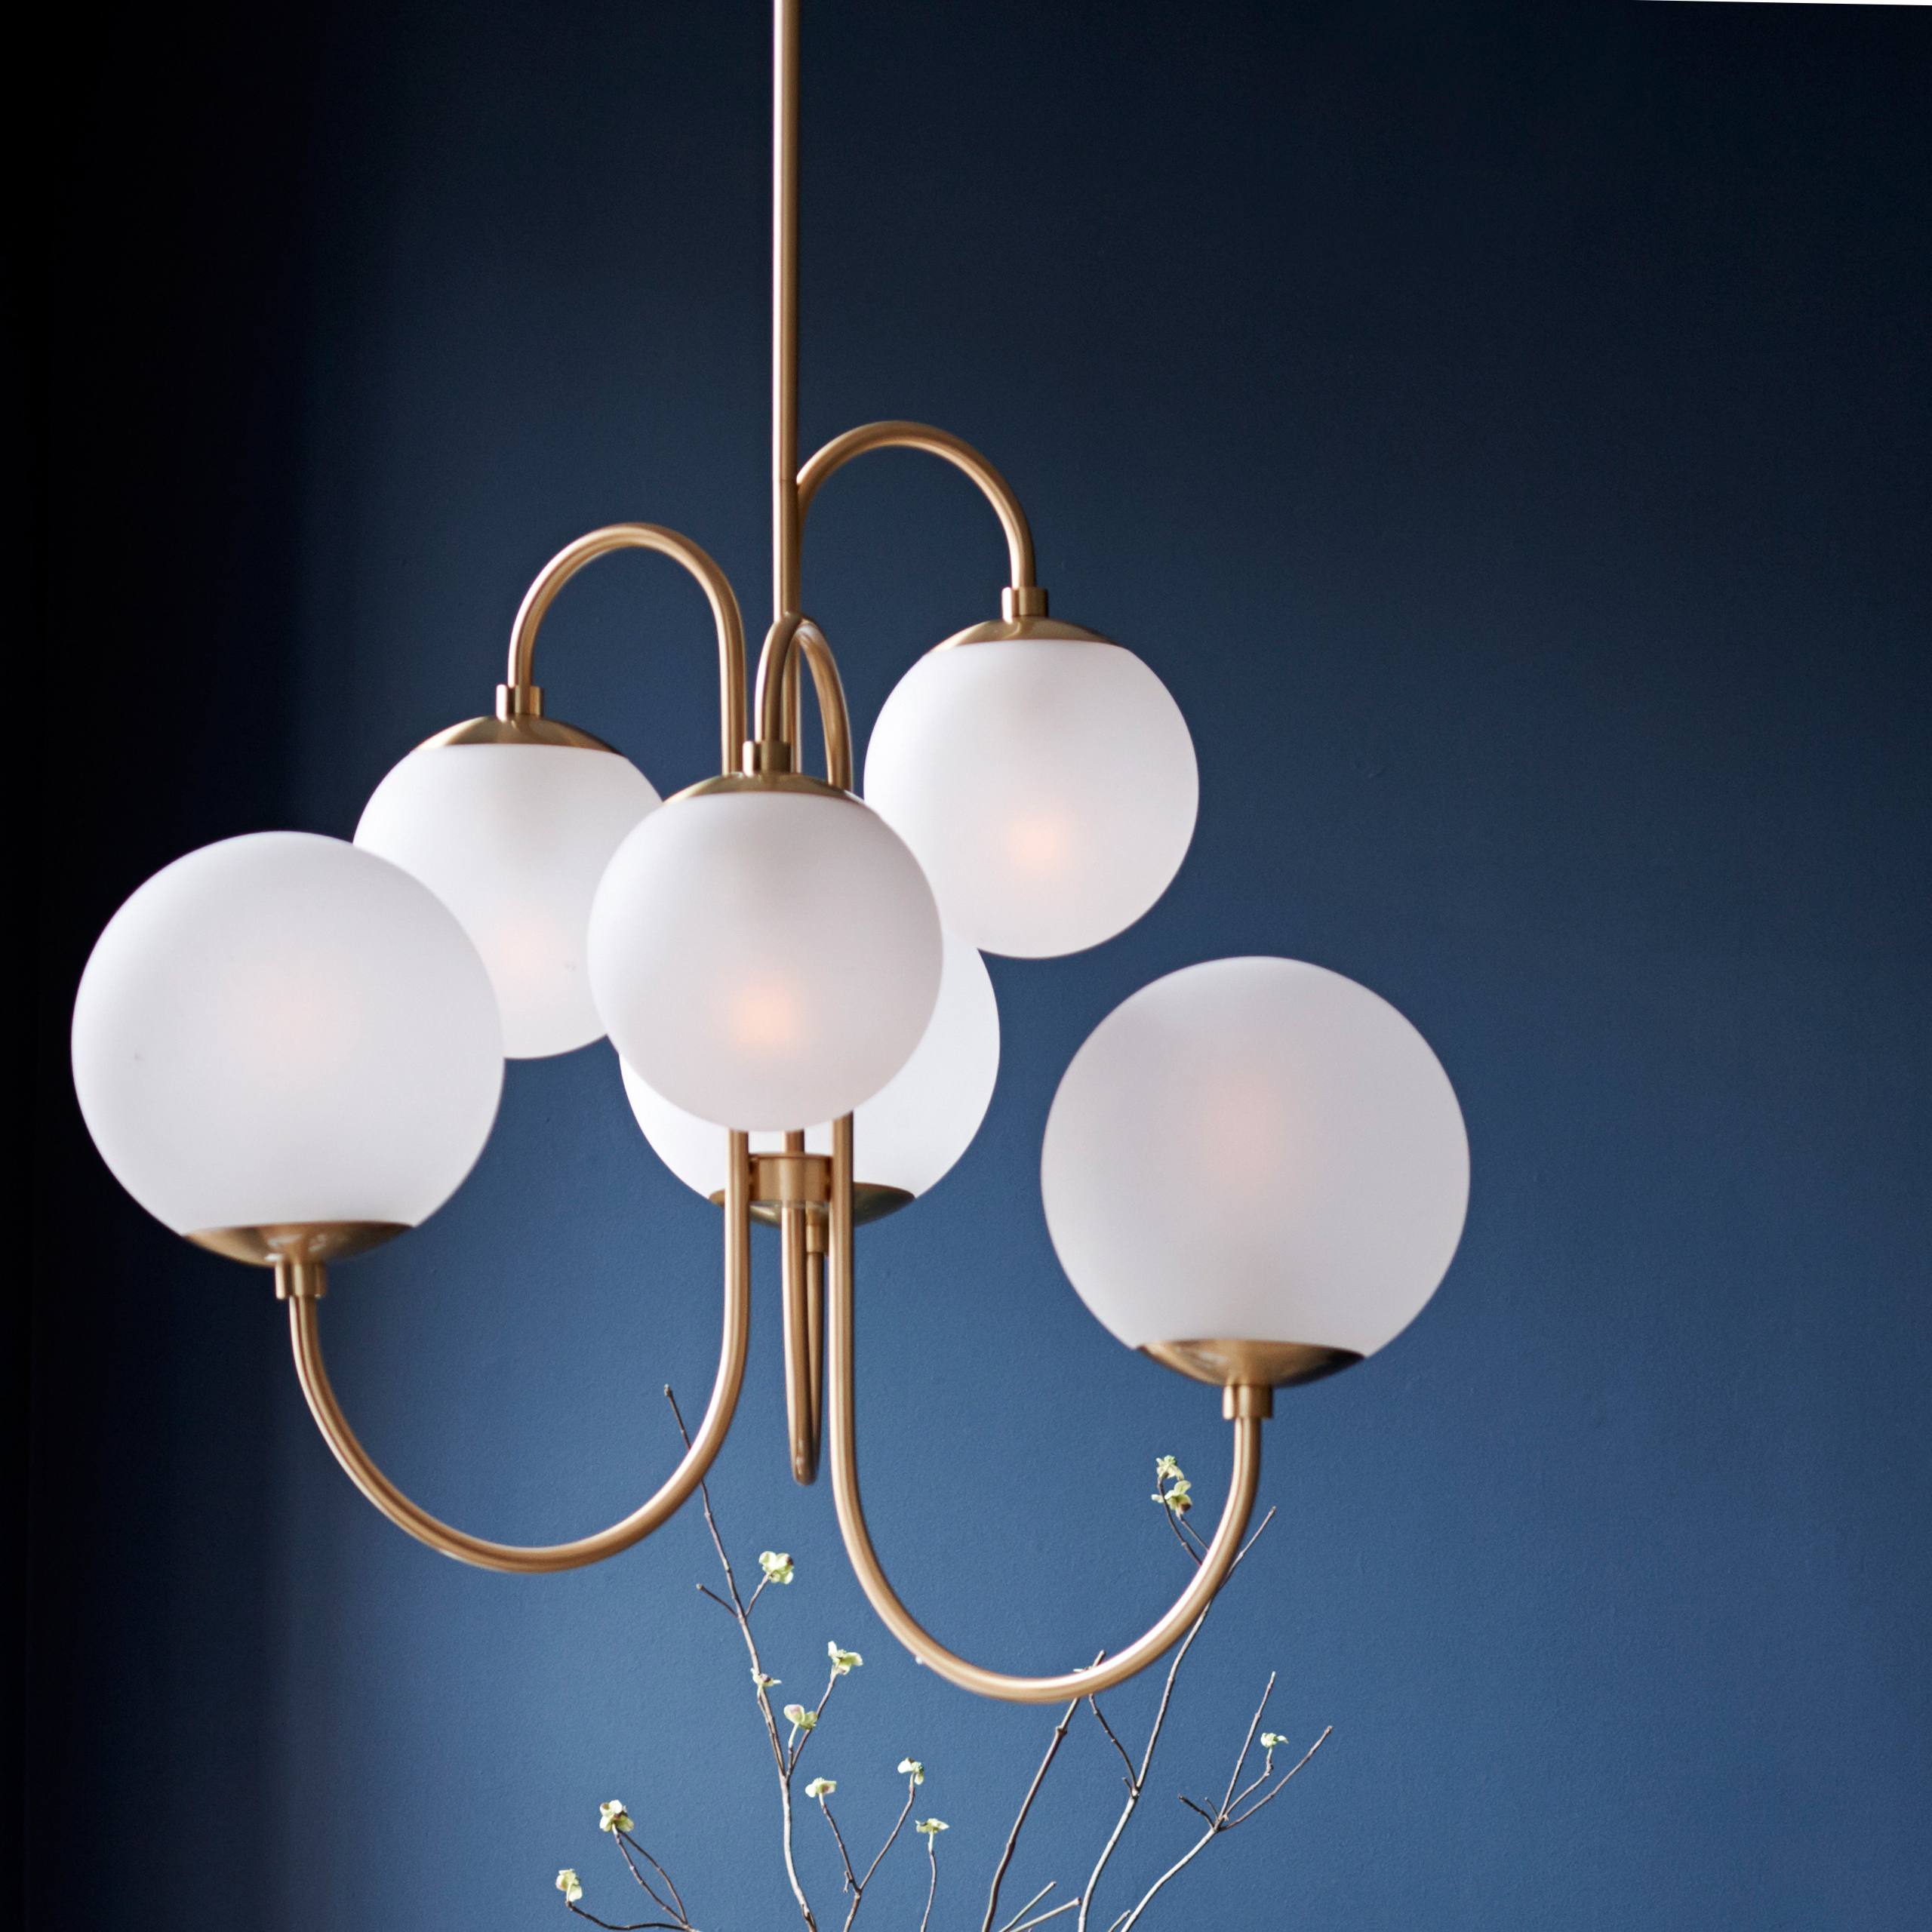 William Sonoma Lighting | West Elm Chandelier | West Elm Pendant